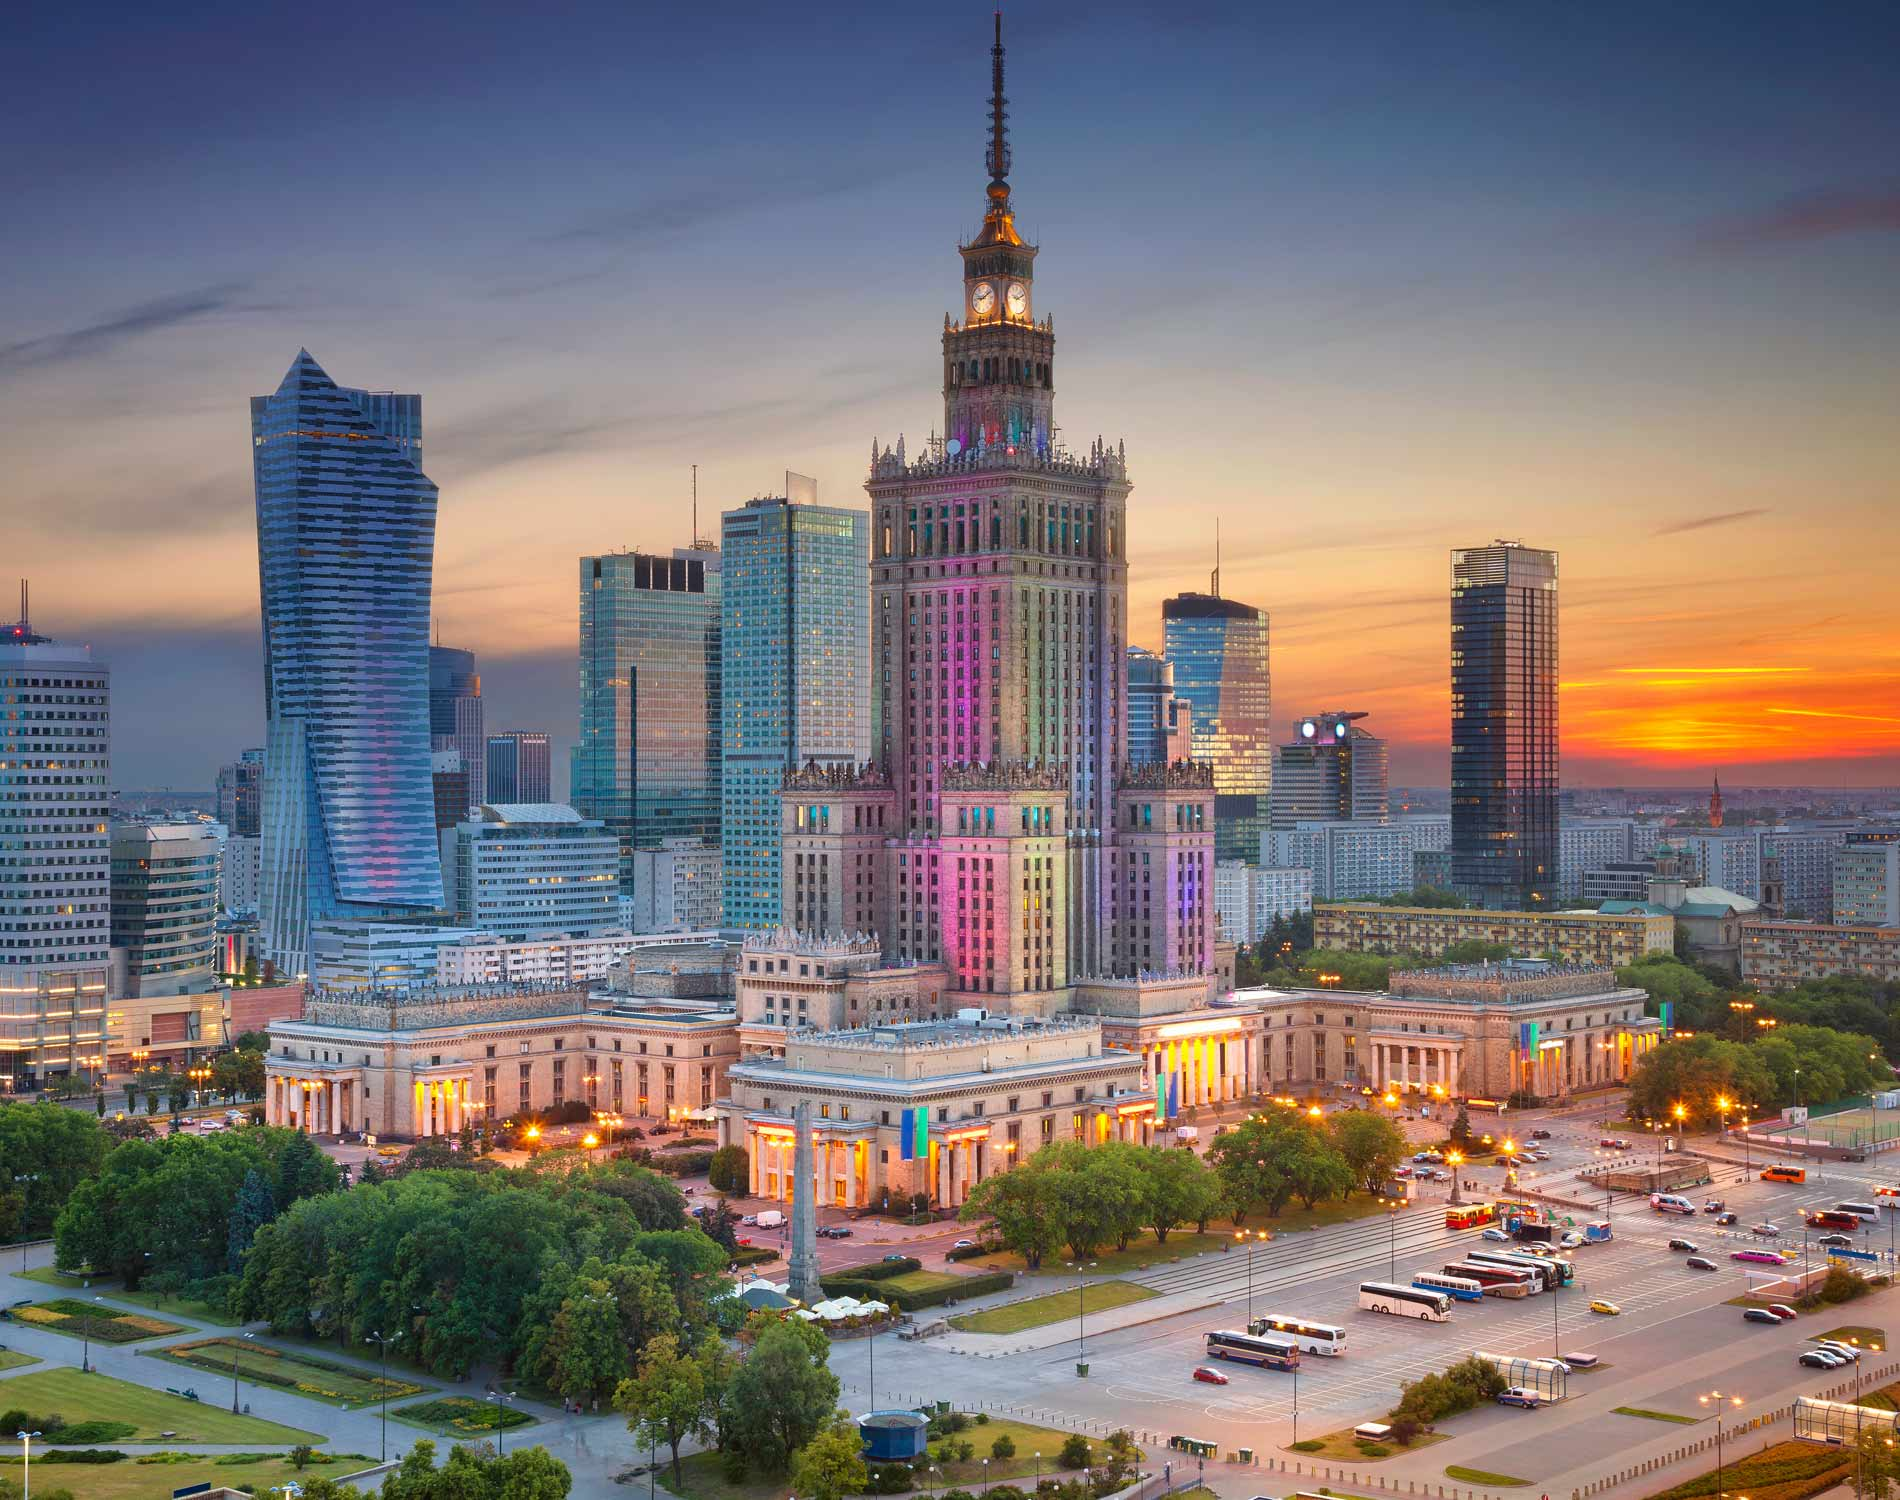 /-/media/images/website/background-images/offices/warsaw/warsaw_dusk_1500x1900.ashx